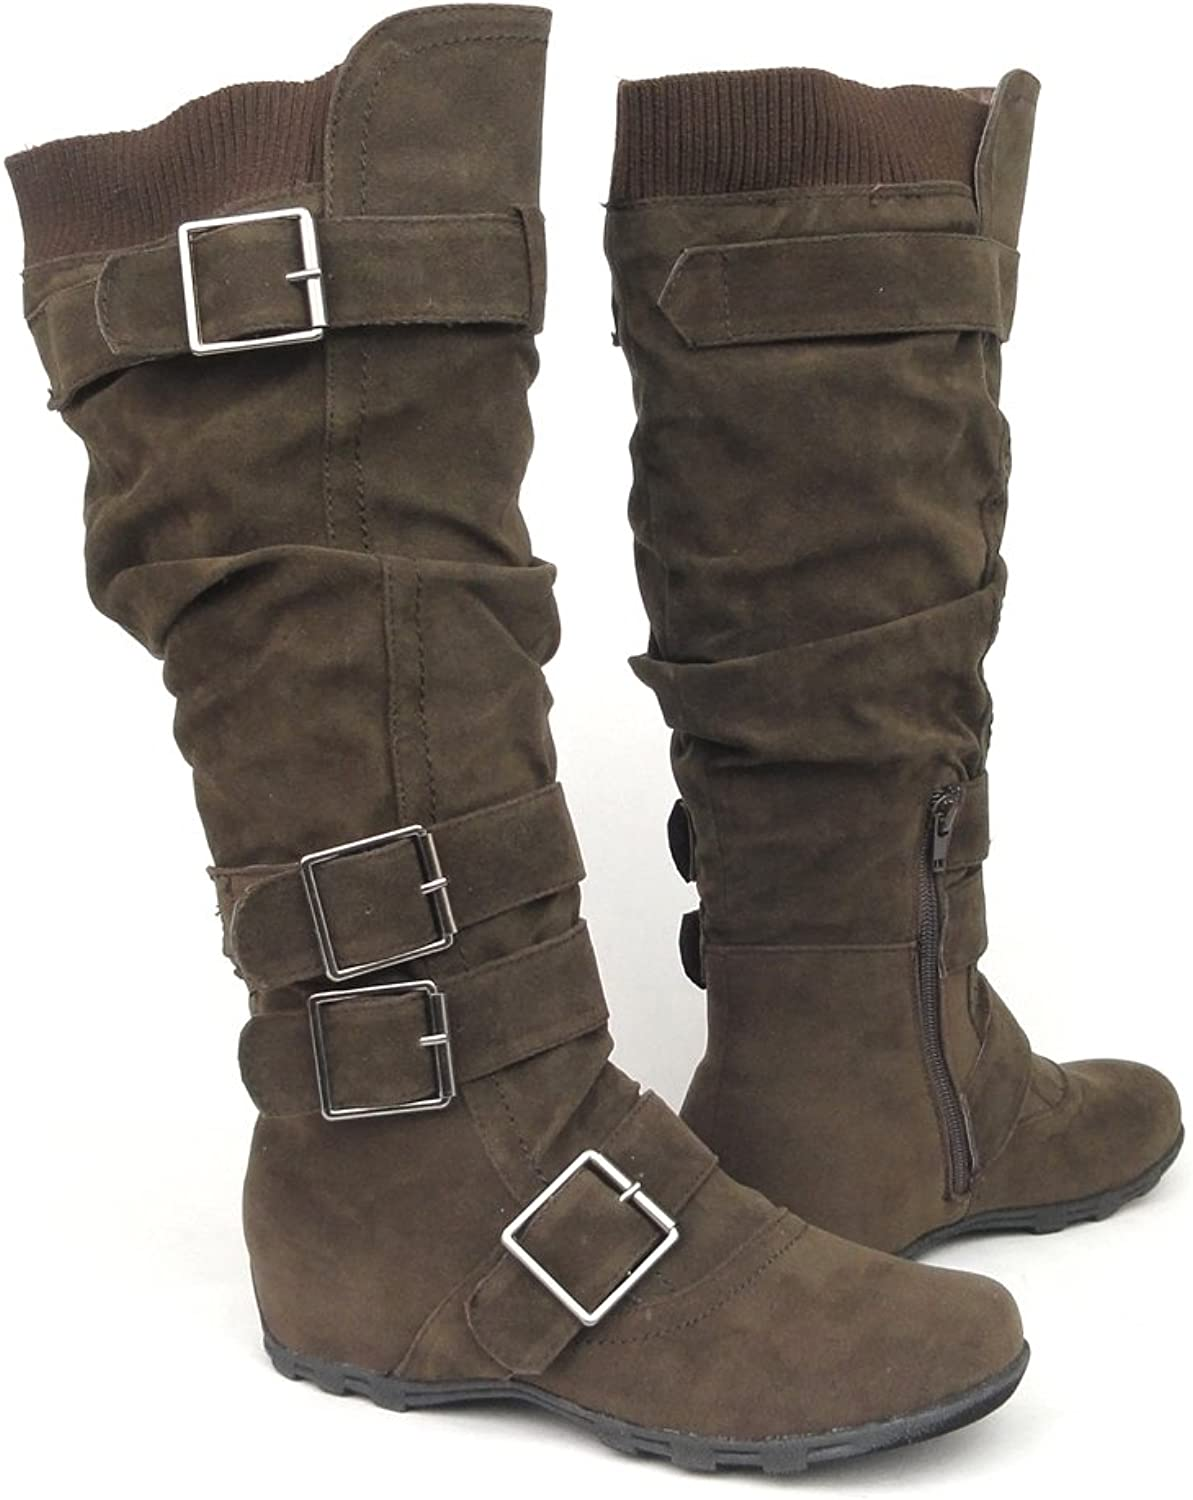 Womens Knee High Faux Suede Flat Winter Buckle Boots Dark Brown, 5.5-10